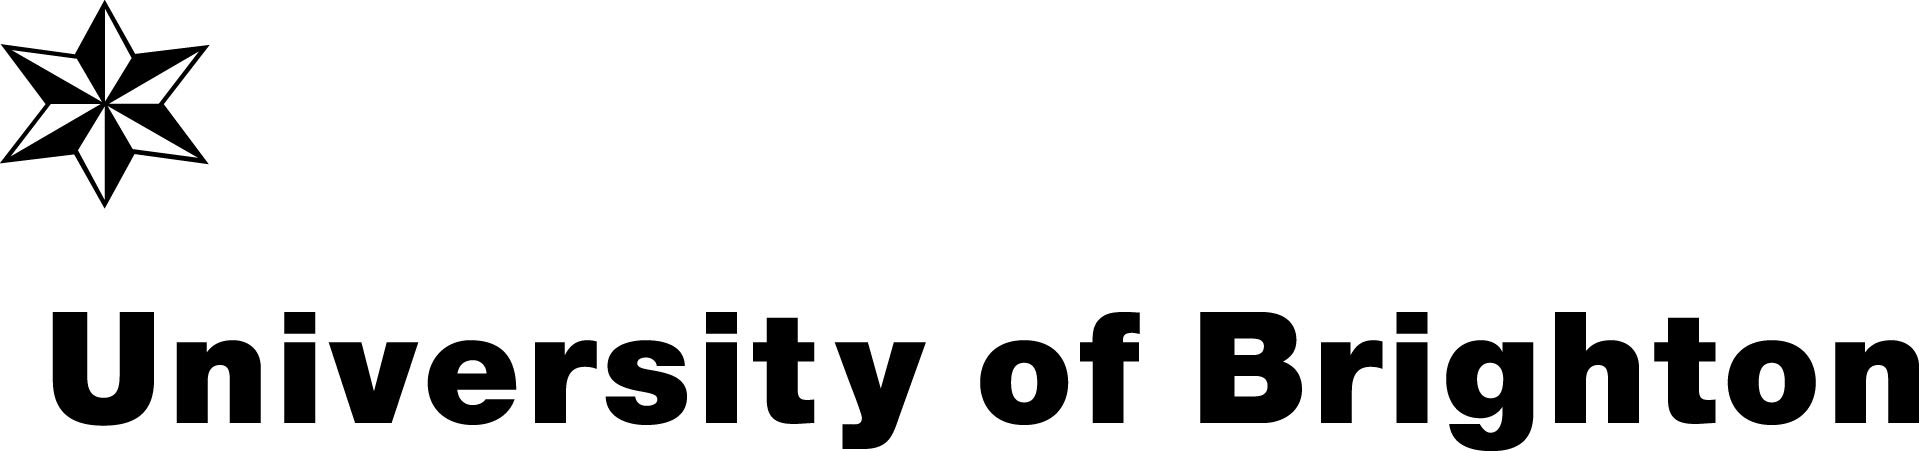 University-of-Brighton-logo.jpeg